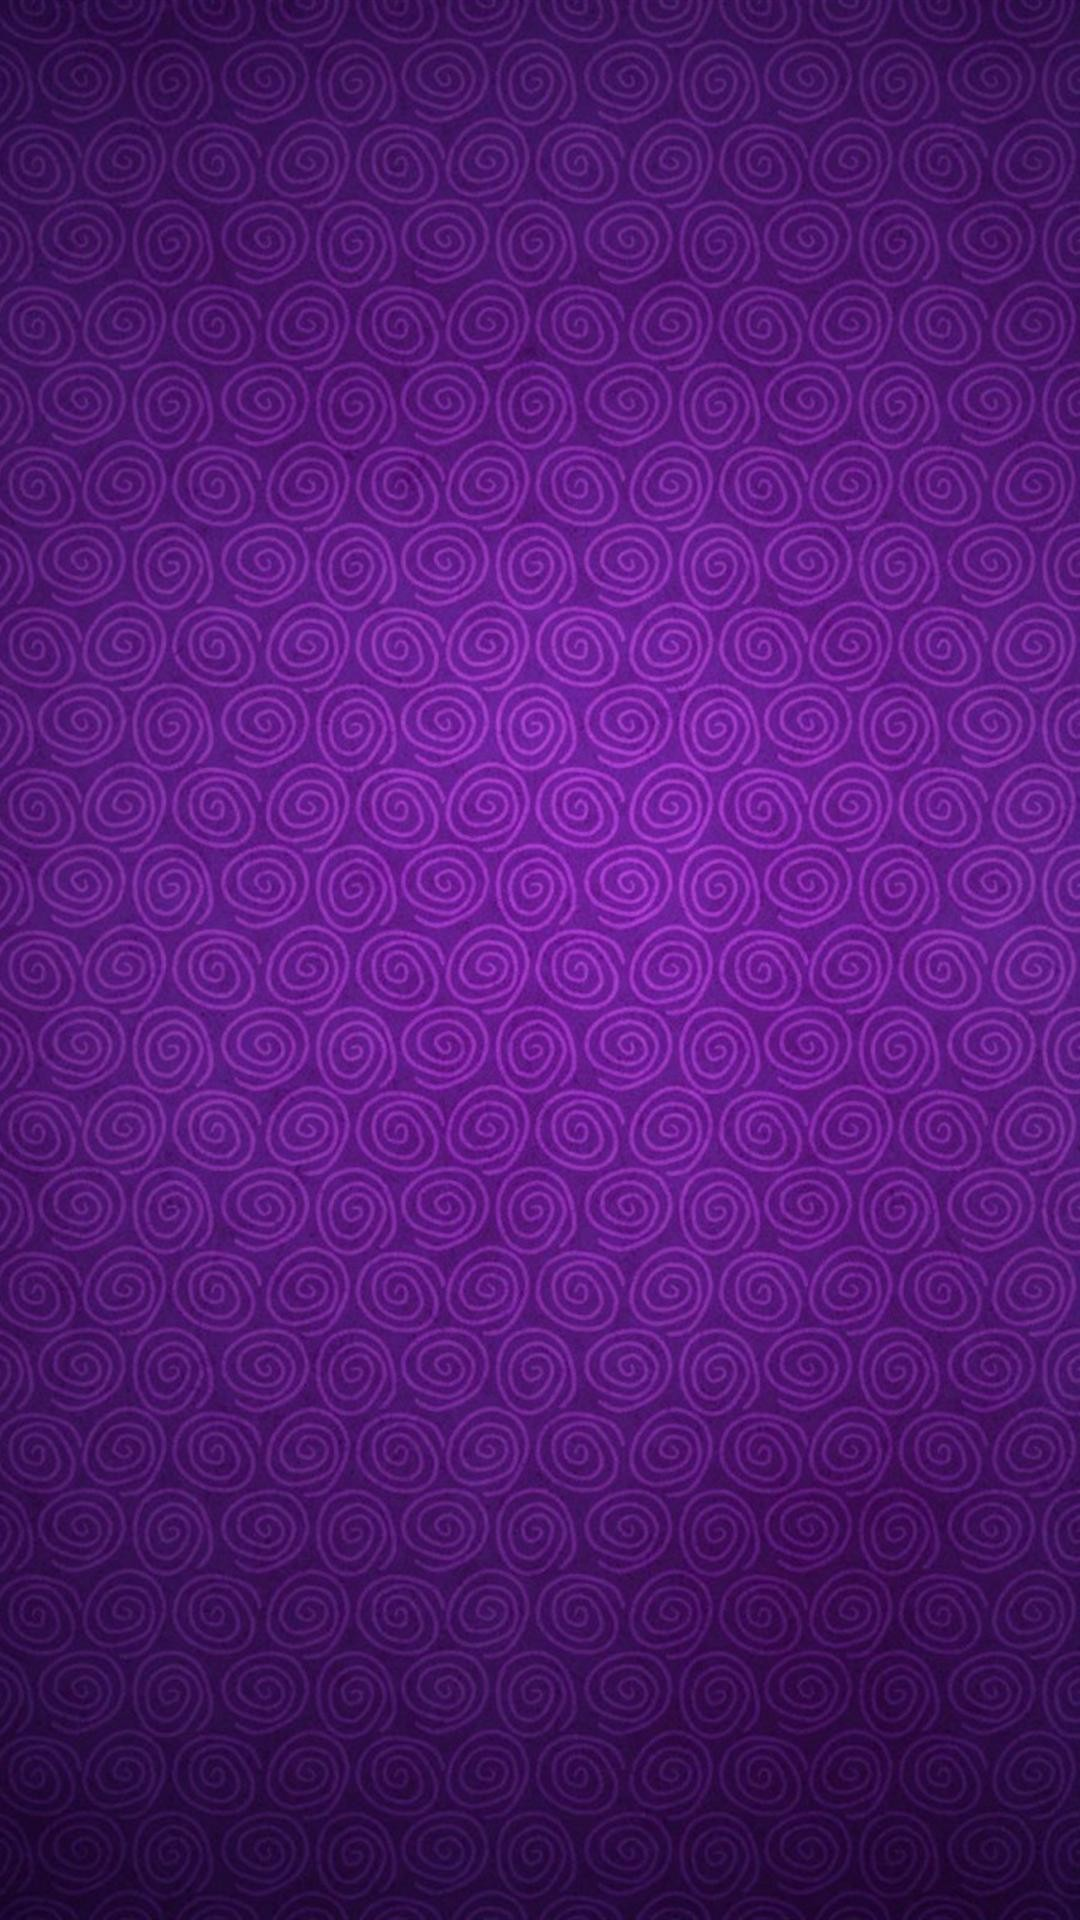 download spinning twisting dark purple wallpapers for iphone 6 plus :